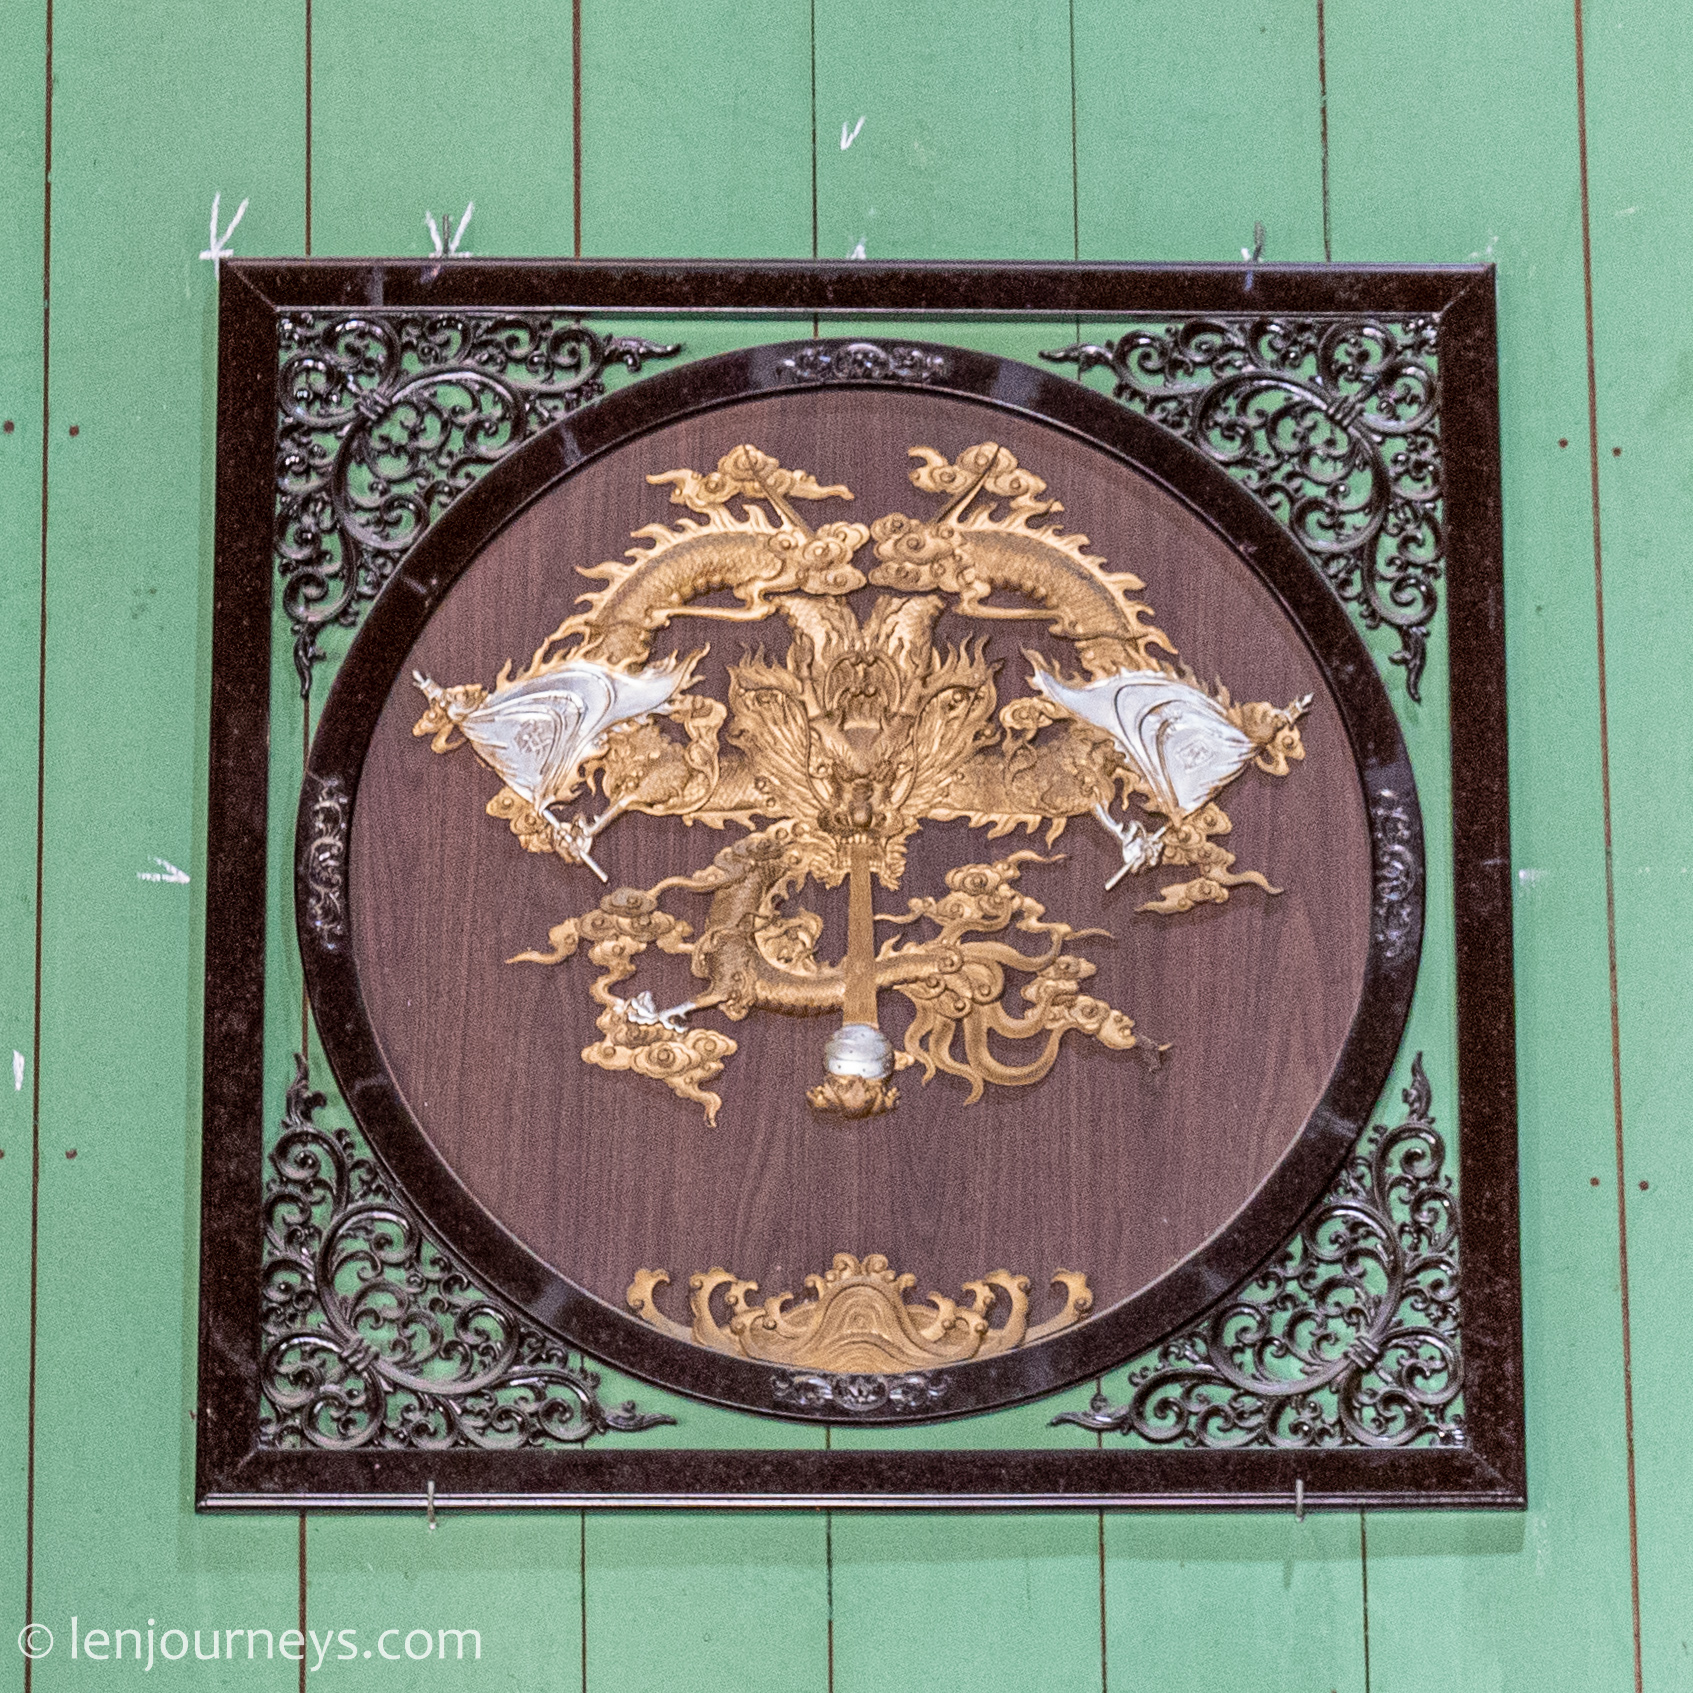 Intricate artwork inside Binh Thuy House